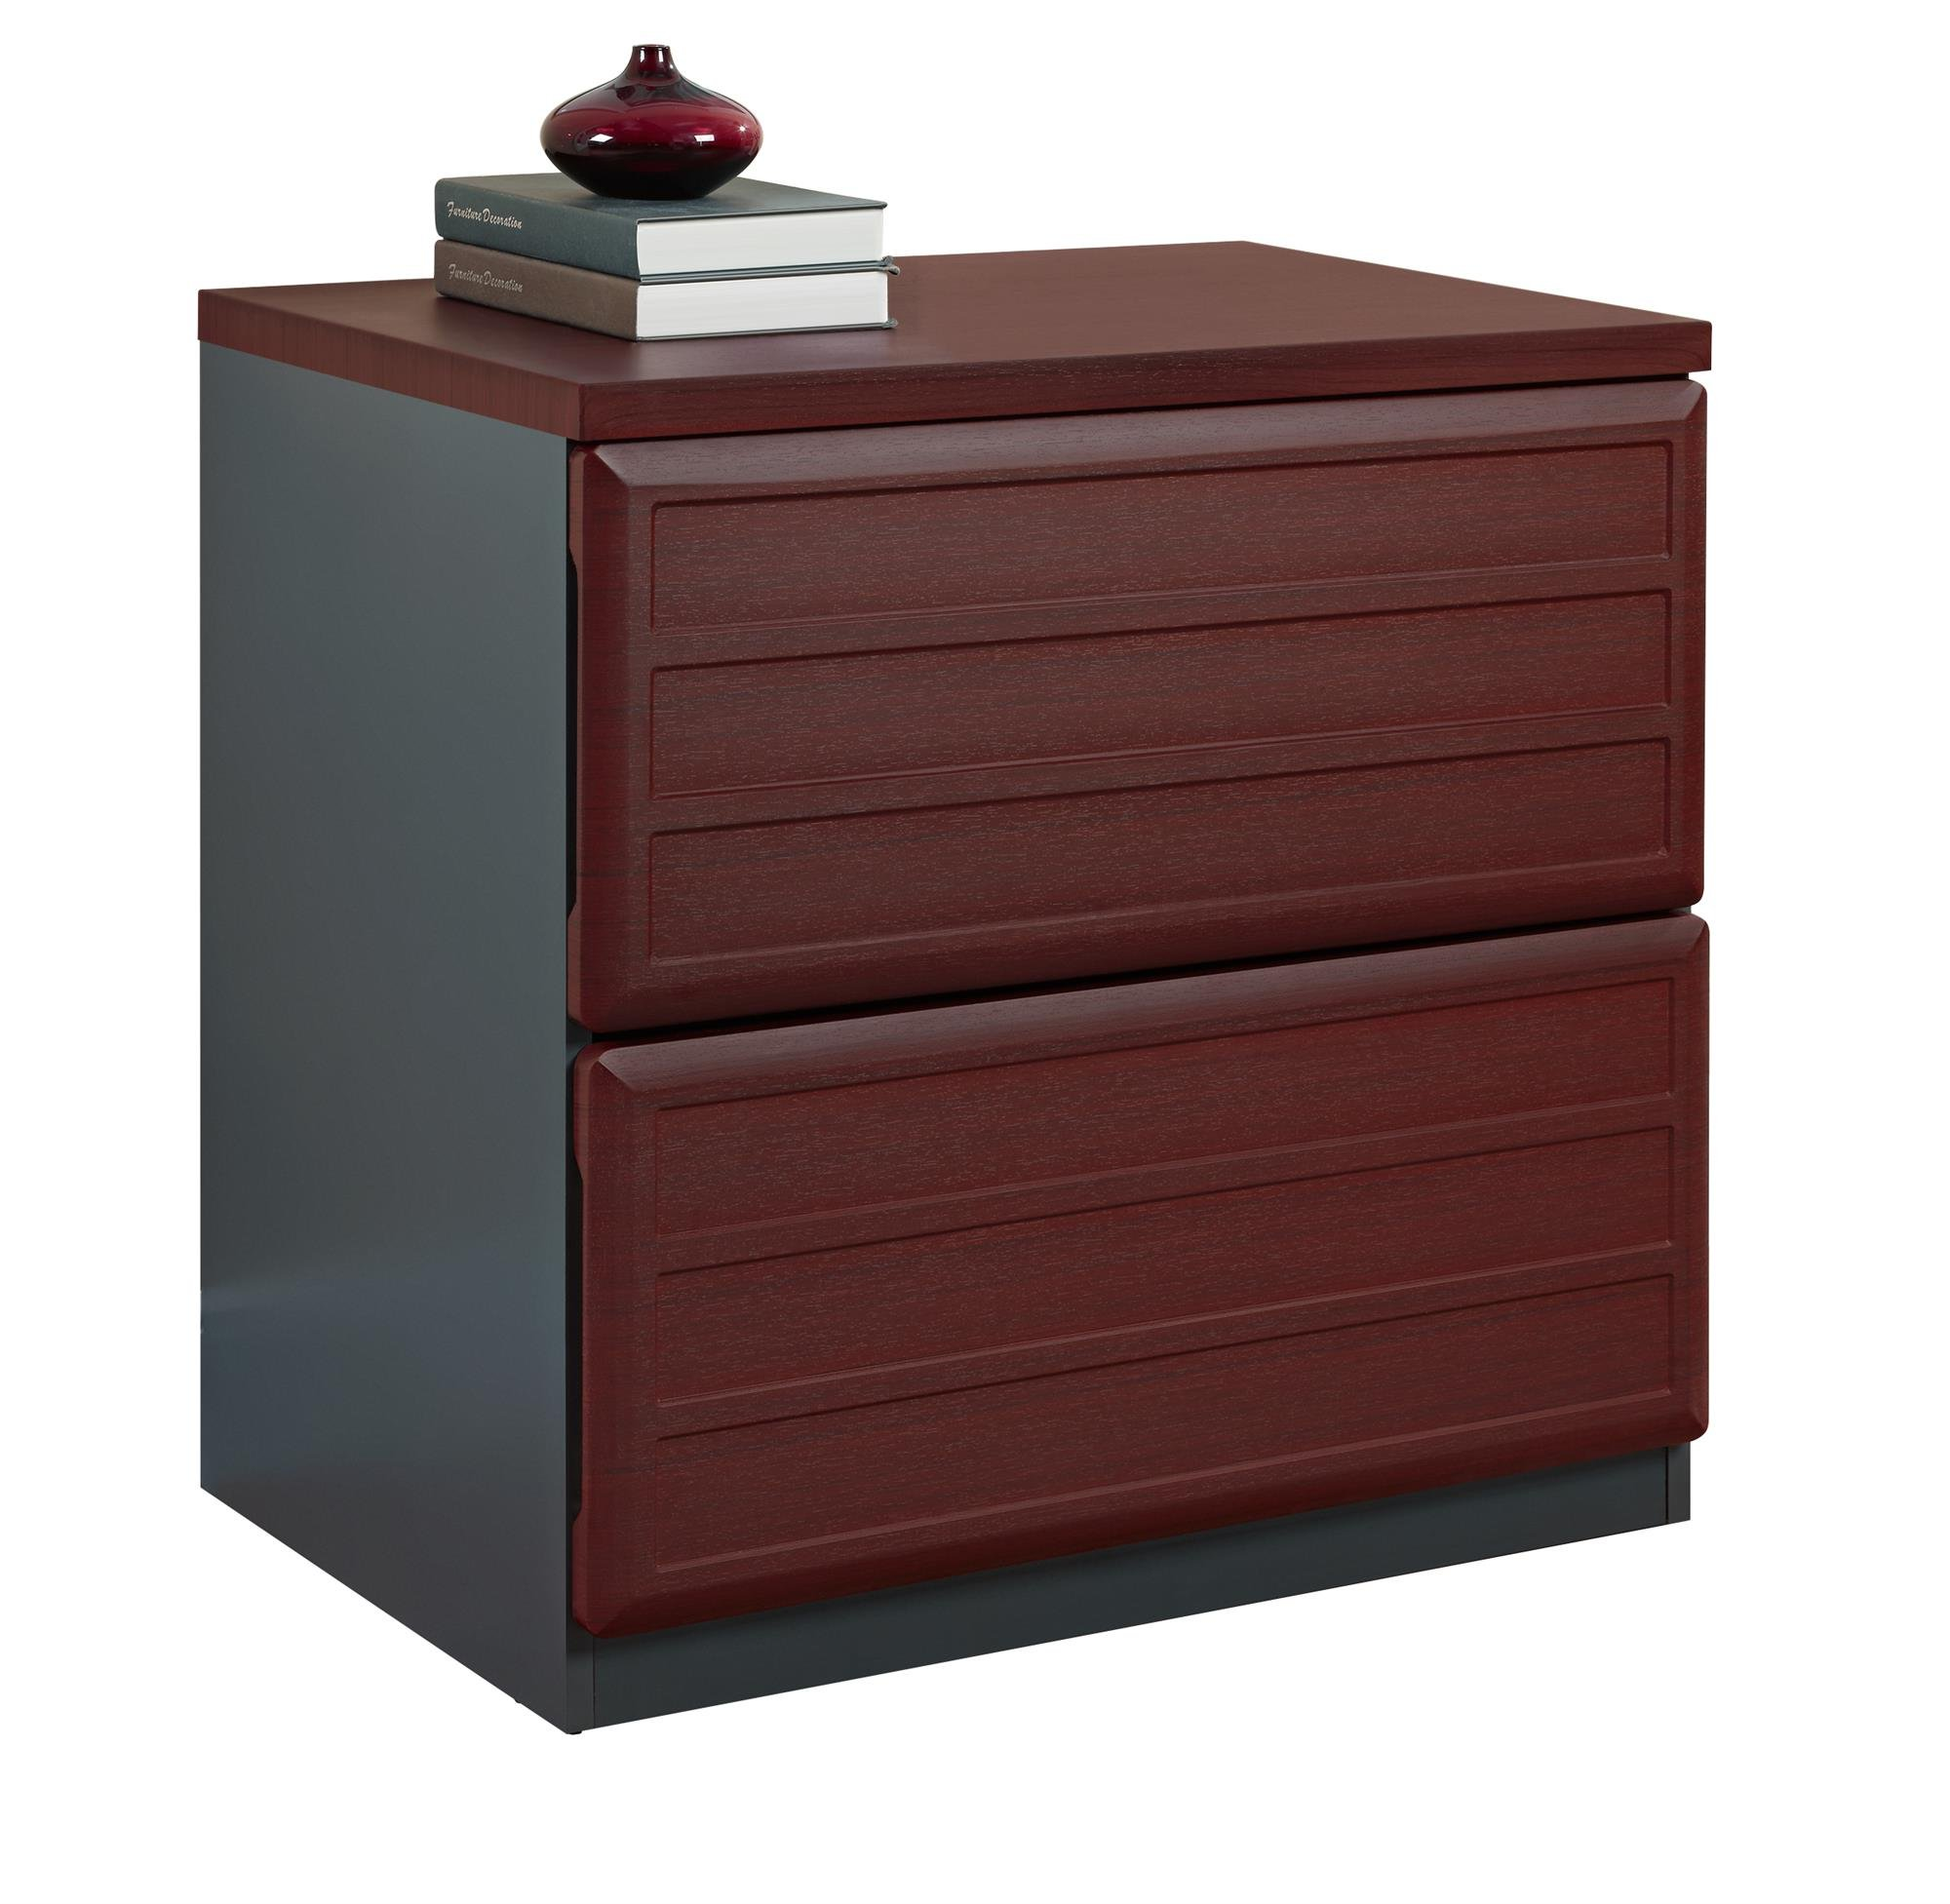 Ameriwood Home Pursuit Lateral File Cabinet, Cherry by Altra Furniture (Image #2)